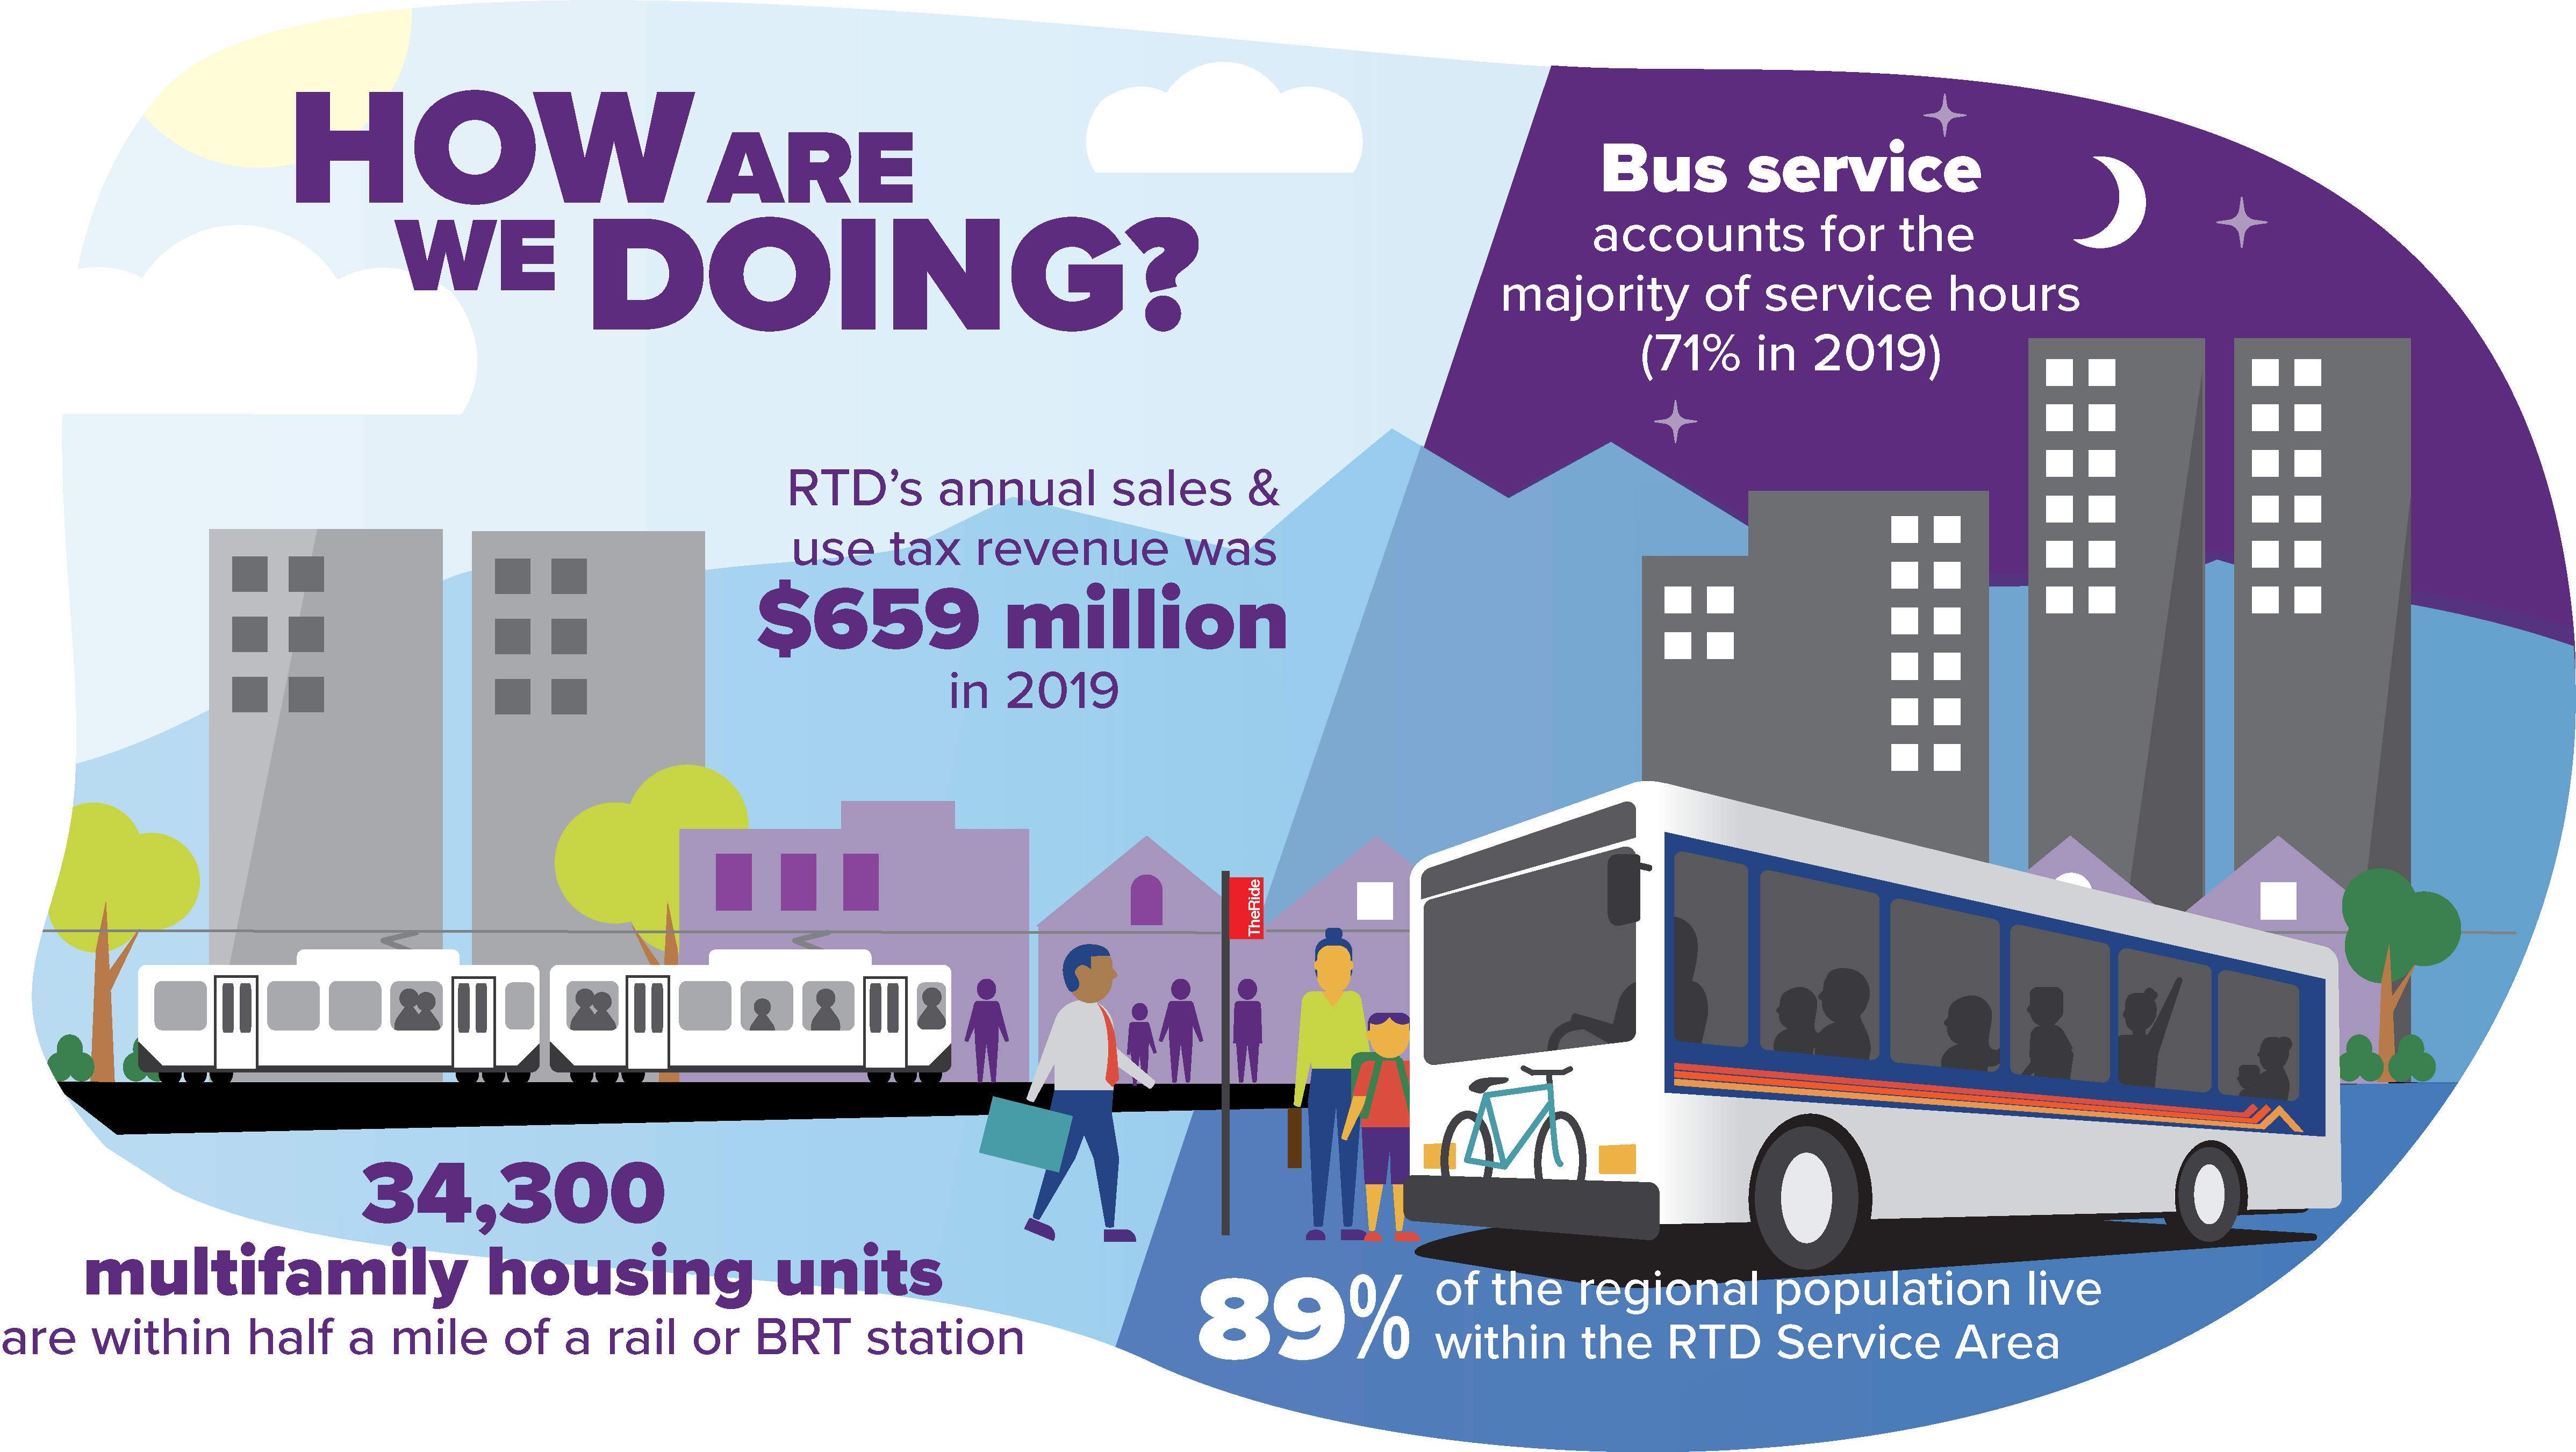 Infographic: How are we doing? RTD's annual sales and use tax revenue was $659 million in 2019. 34,300 multifamily residential units near a rail or BRT station. 89% of the regional population live inside the RTD service area. Bus service accounts for the majority of service hours (71% in 2019).